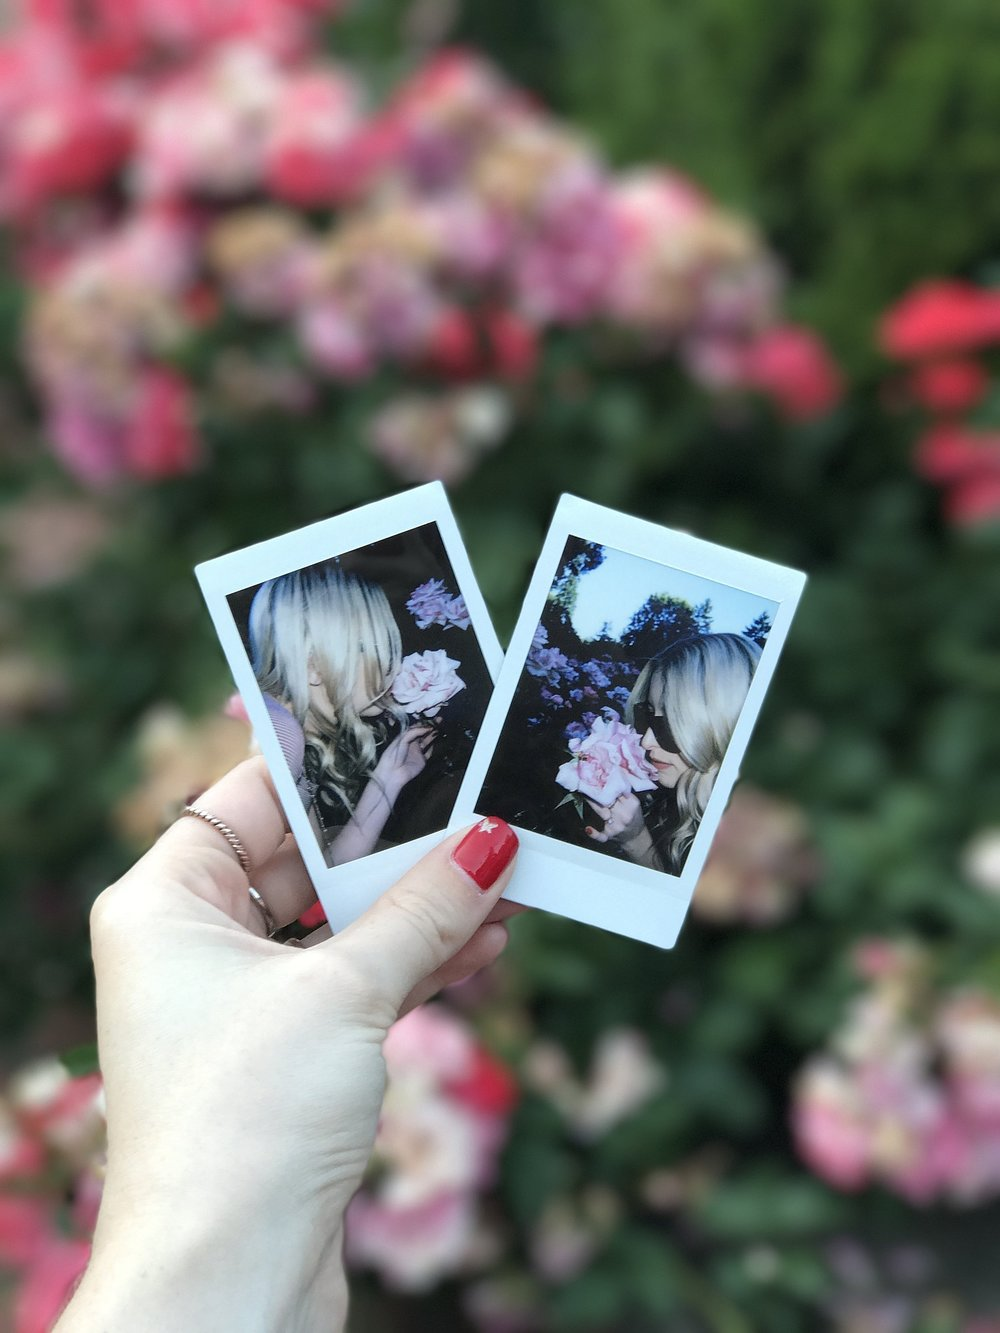 About a month ago I bought a Instax instant film camera. I don't even know why I waited so long to get one. There will be more of these polaroid shots floating into the blog in the future. :)  Shop my Instax Camera and receive some extra goodies,  here .